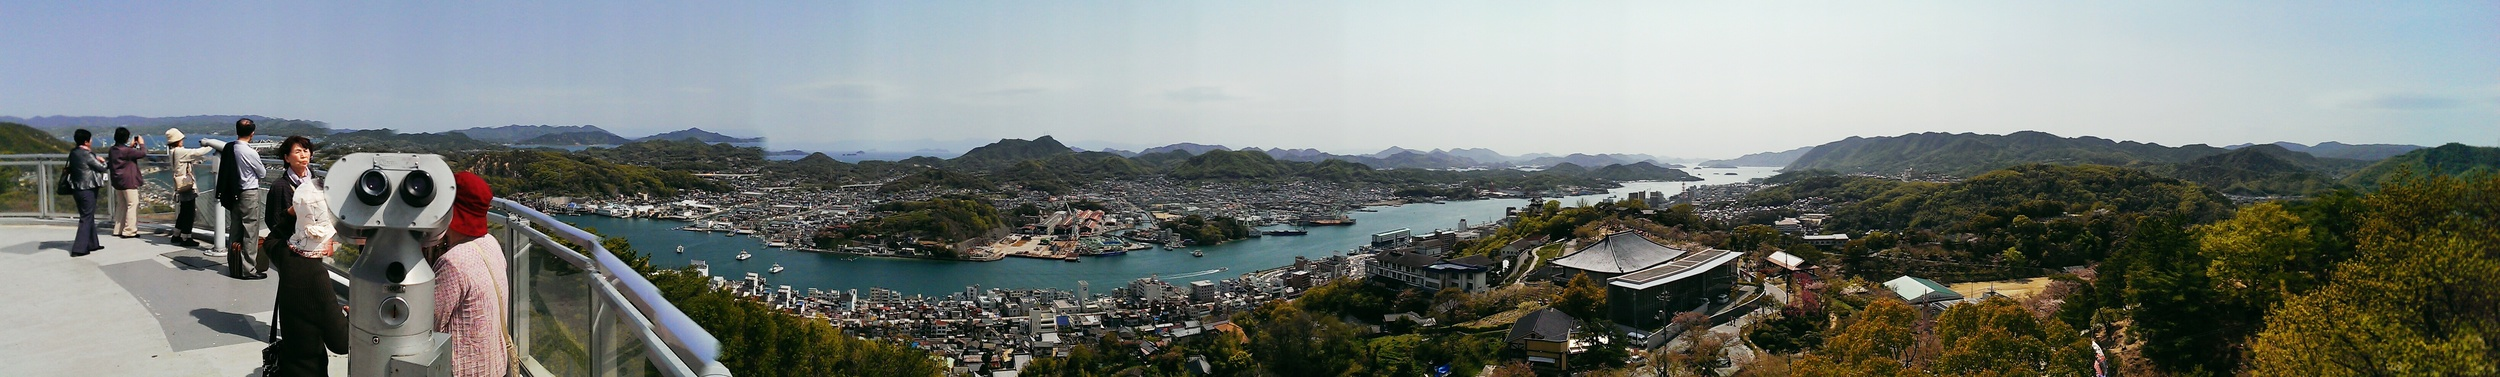 The view from Mt Senkouji in Onomachi.